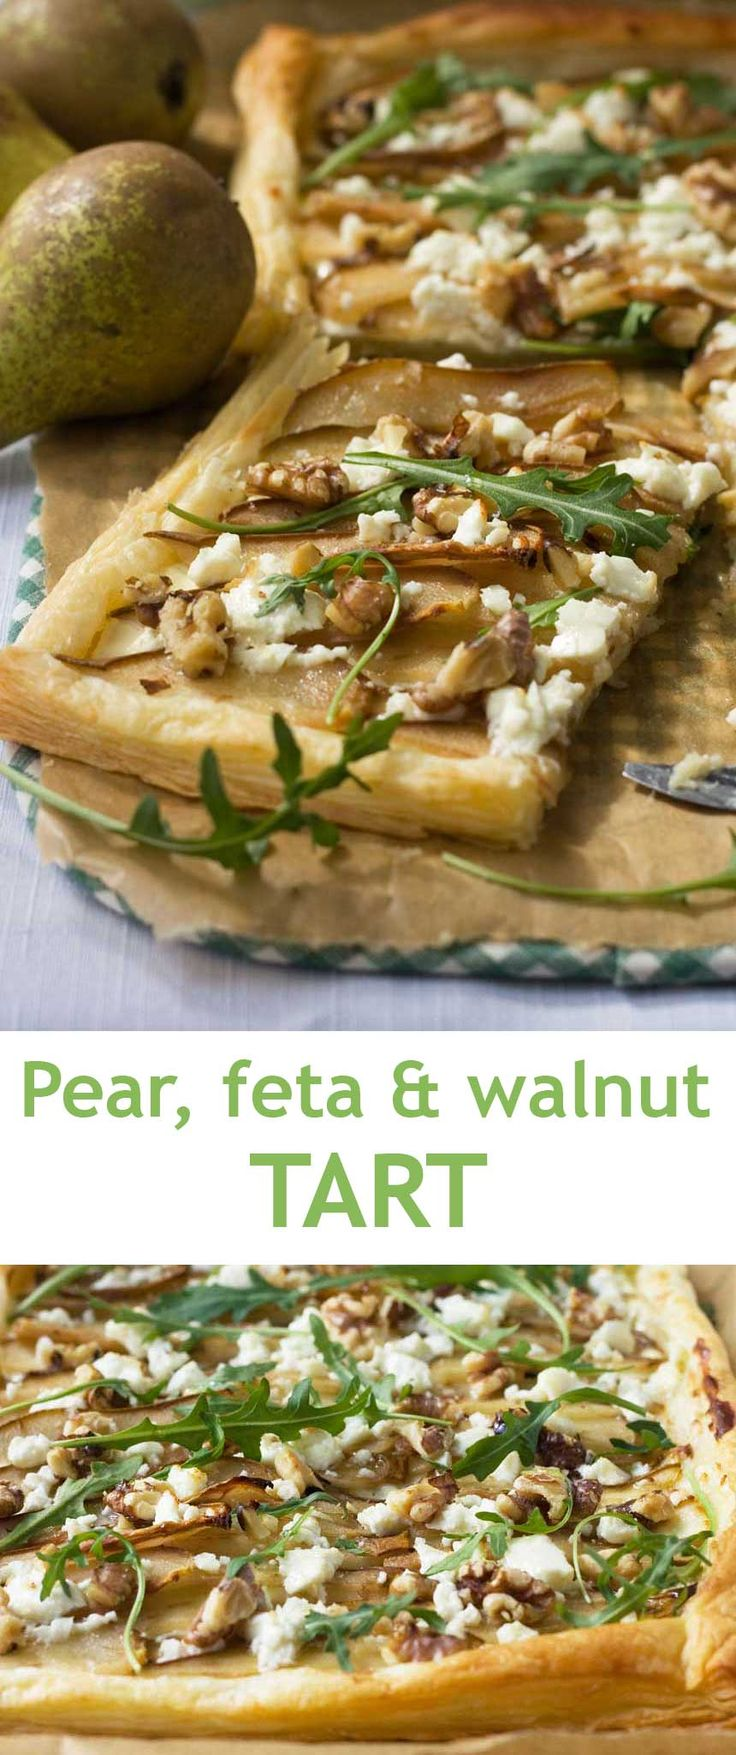 Pear, feta and walnut tart                                                                                                                                                                                 More